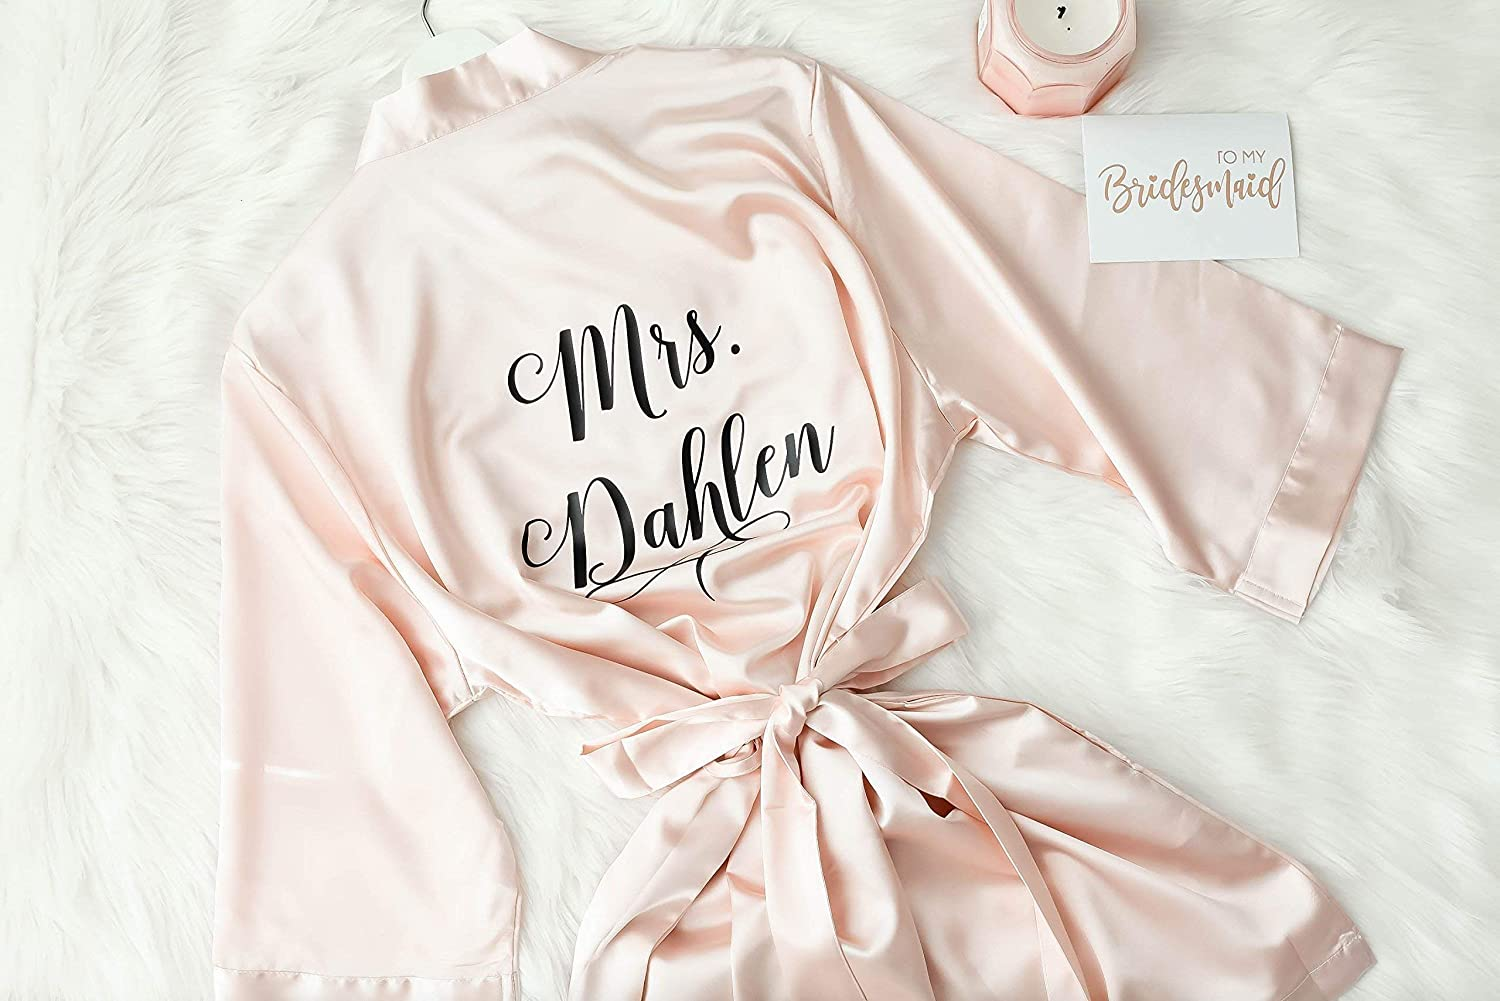 Joy Mabelle Women's Short Kimono Satin Robe for Brides and Bridesmaids, Customize Your Own Name or Title on Front or Back, Personalized Bridesmaid Robes Bridal Party, Bridal Party Gifts Ideas